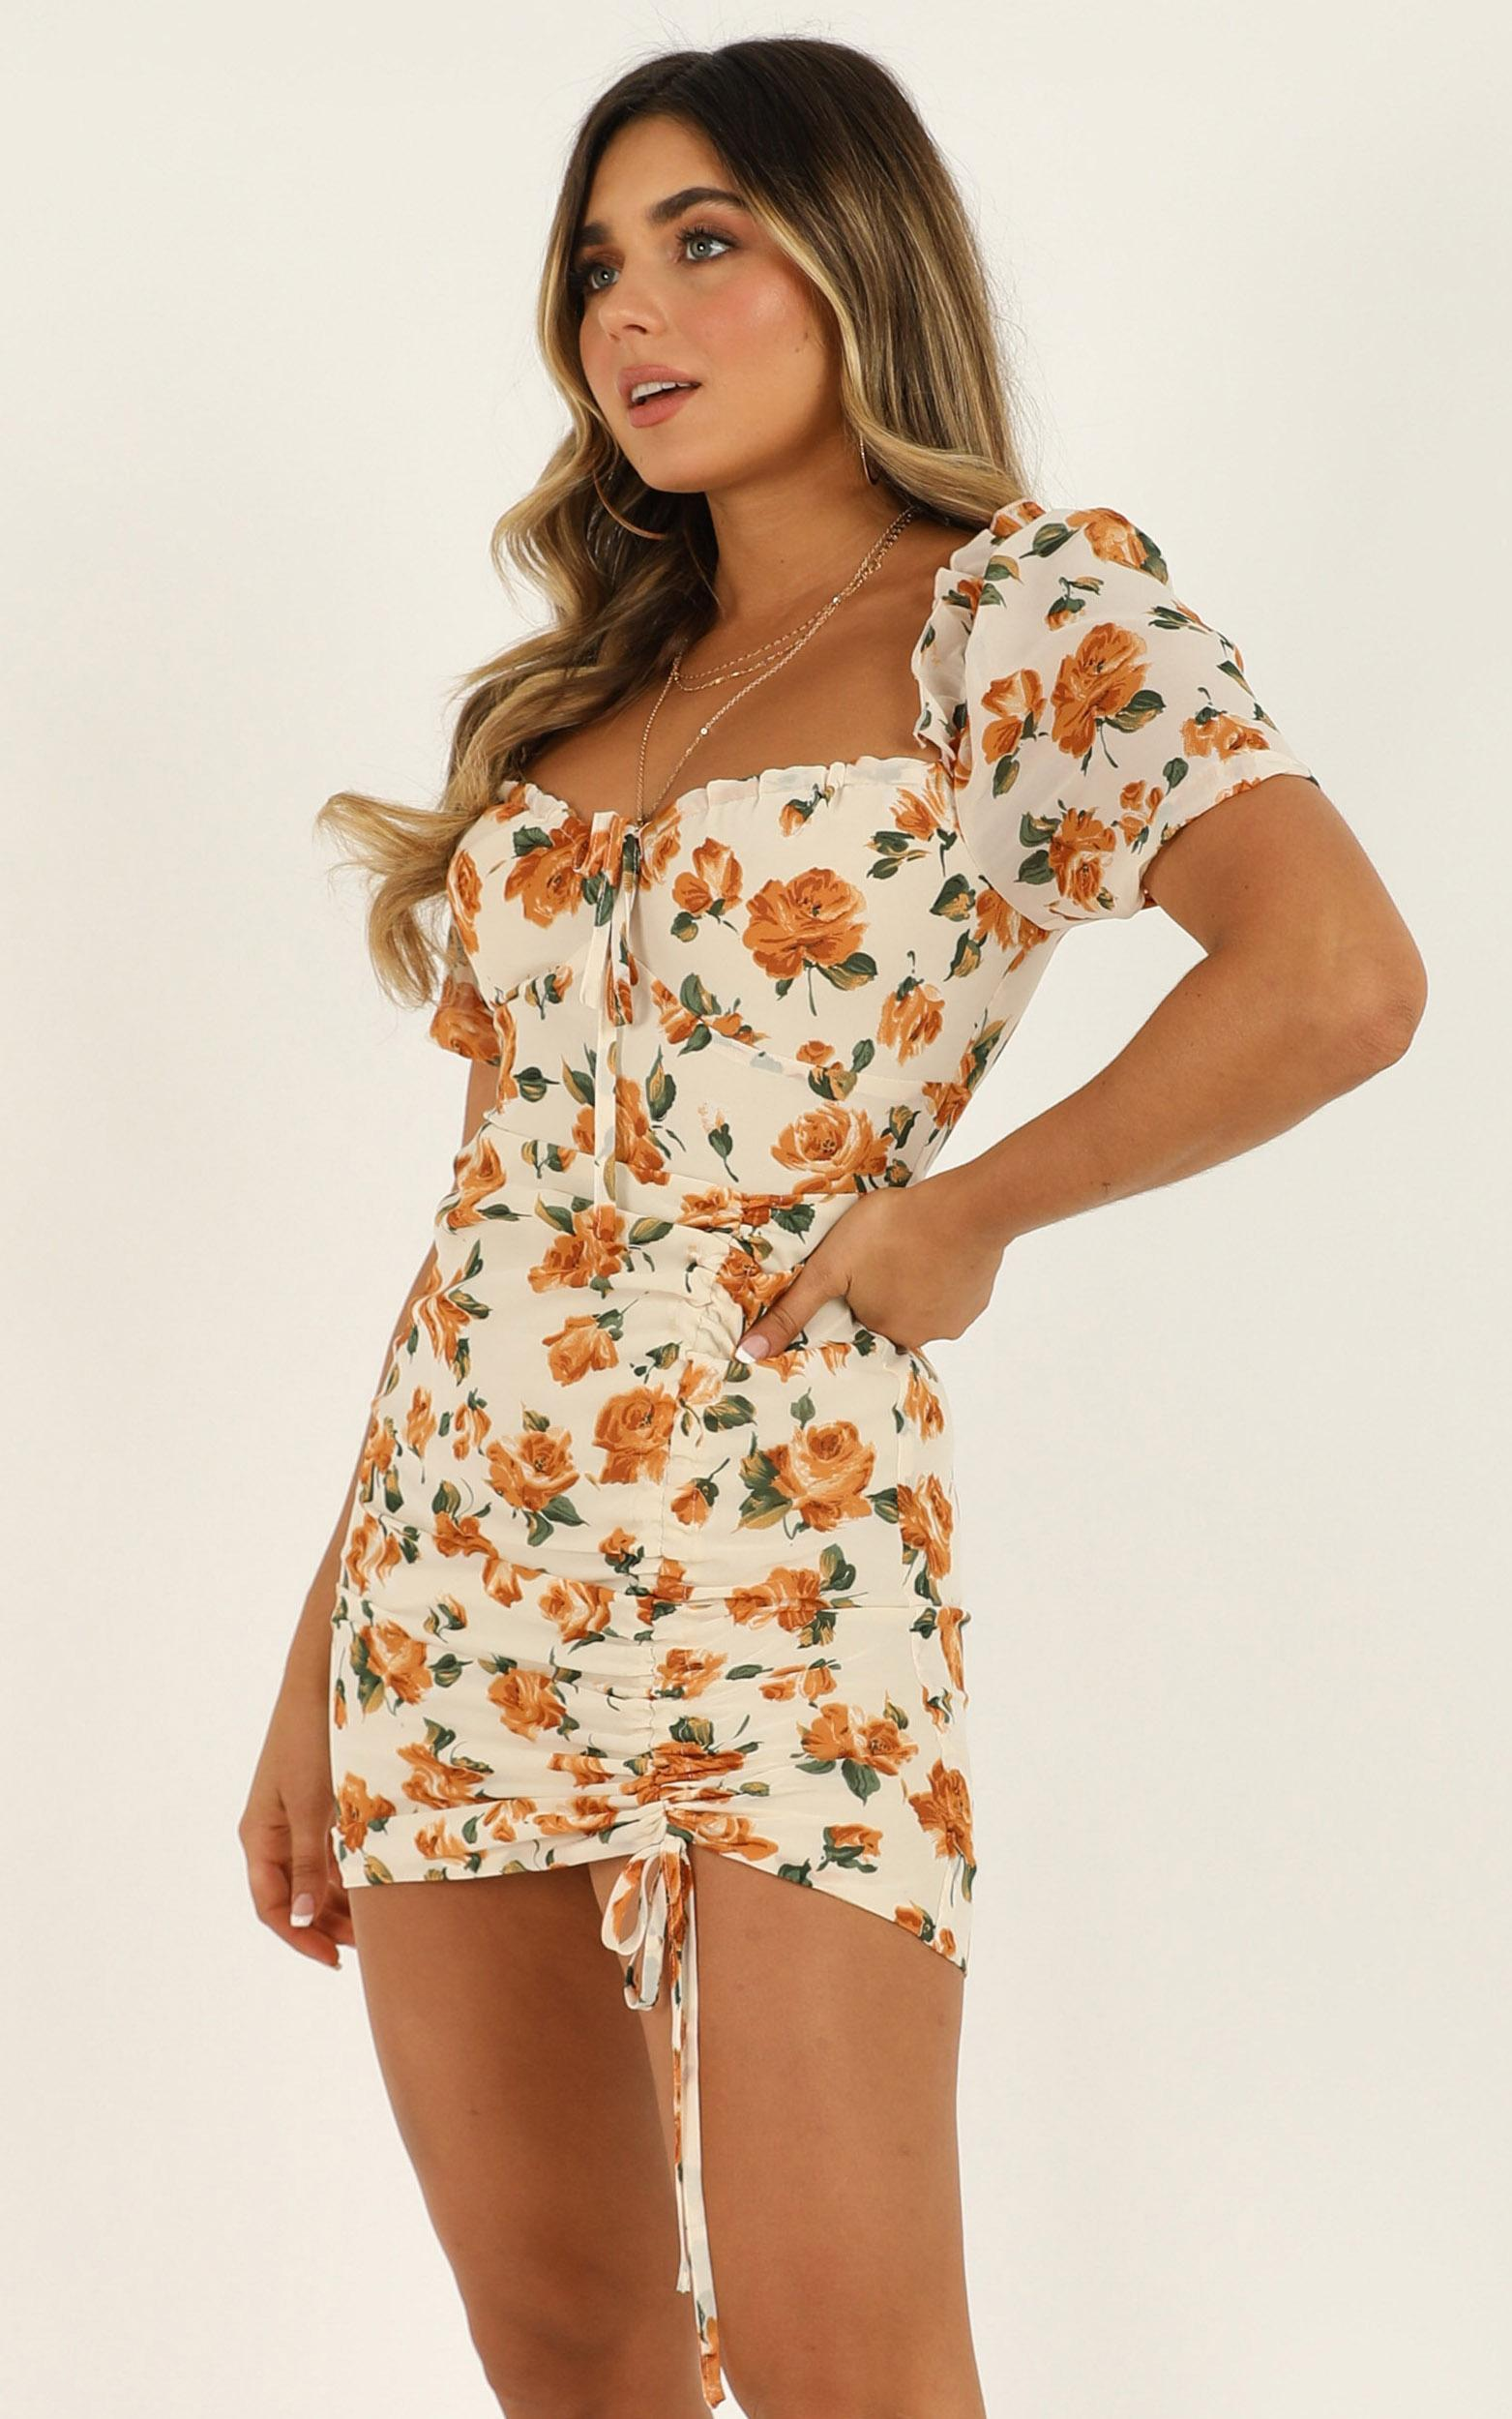 How About Now Dress in cream floral - 20 (XXXXL), Cream, hi-res image number null